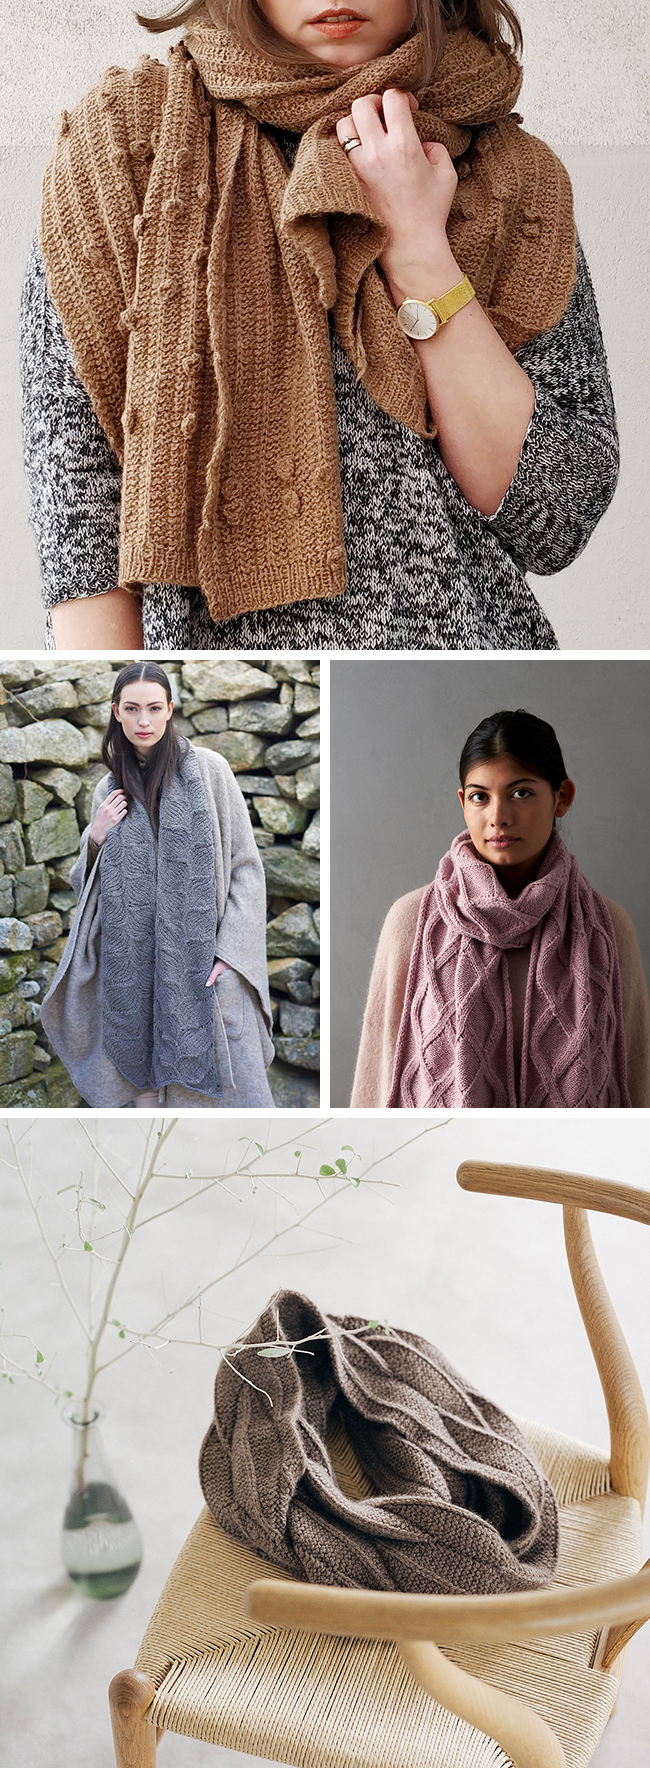 Best knitting patterns of the year (scarves)